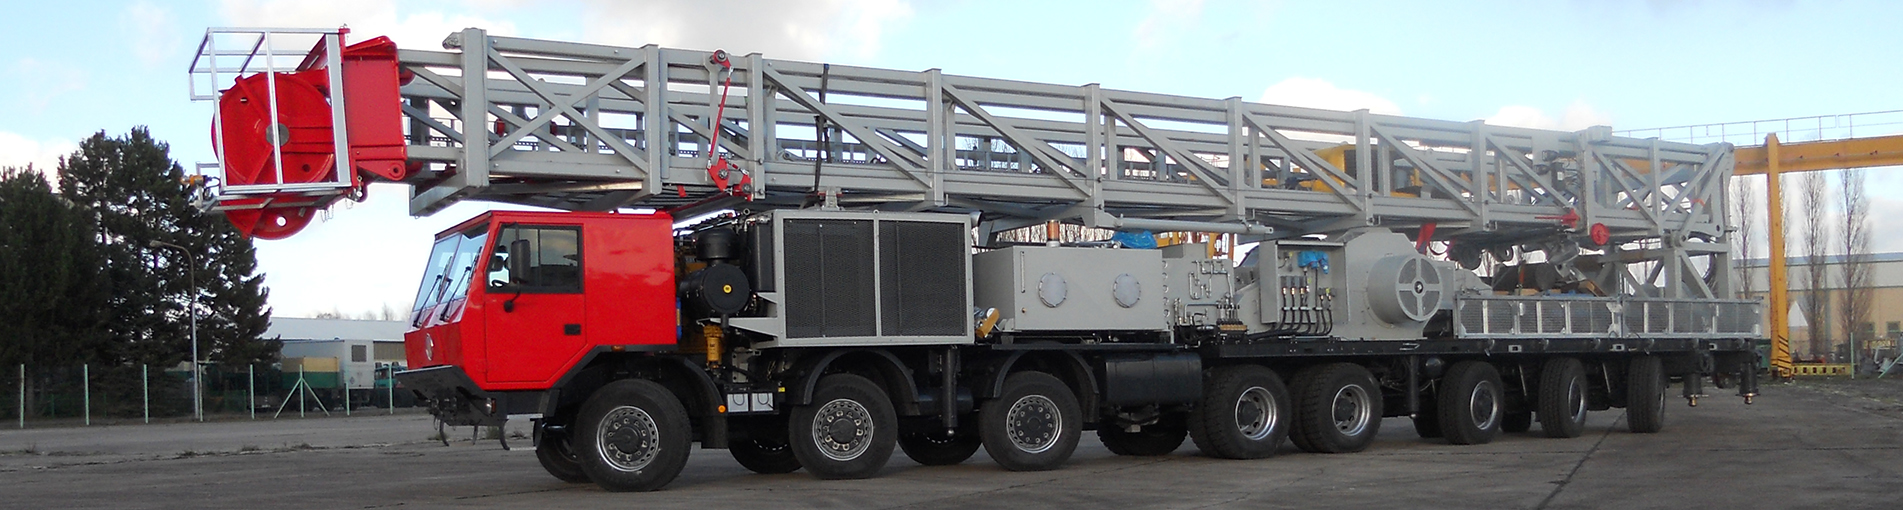 MD 250 Rig Series